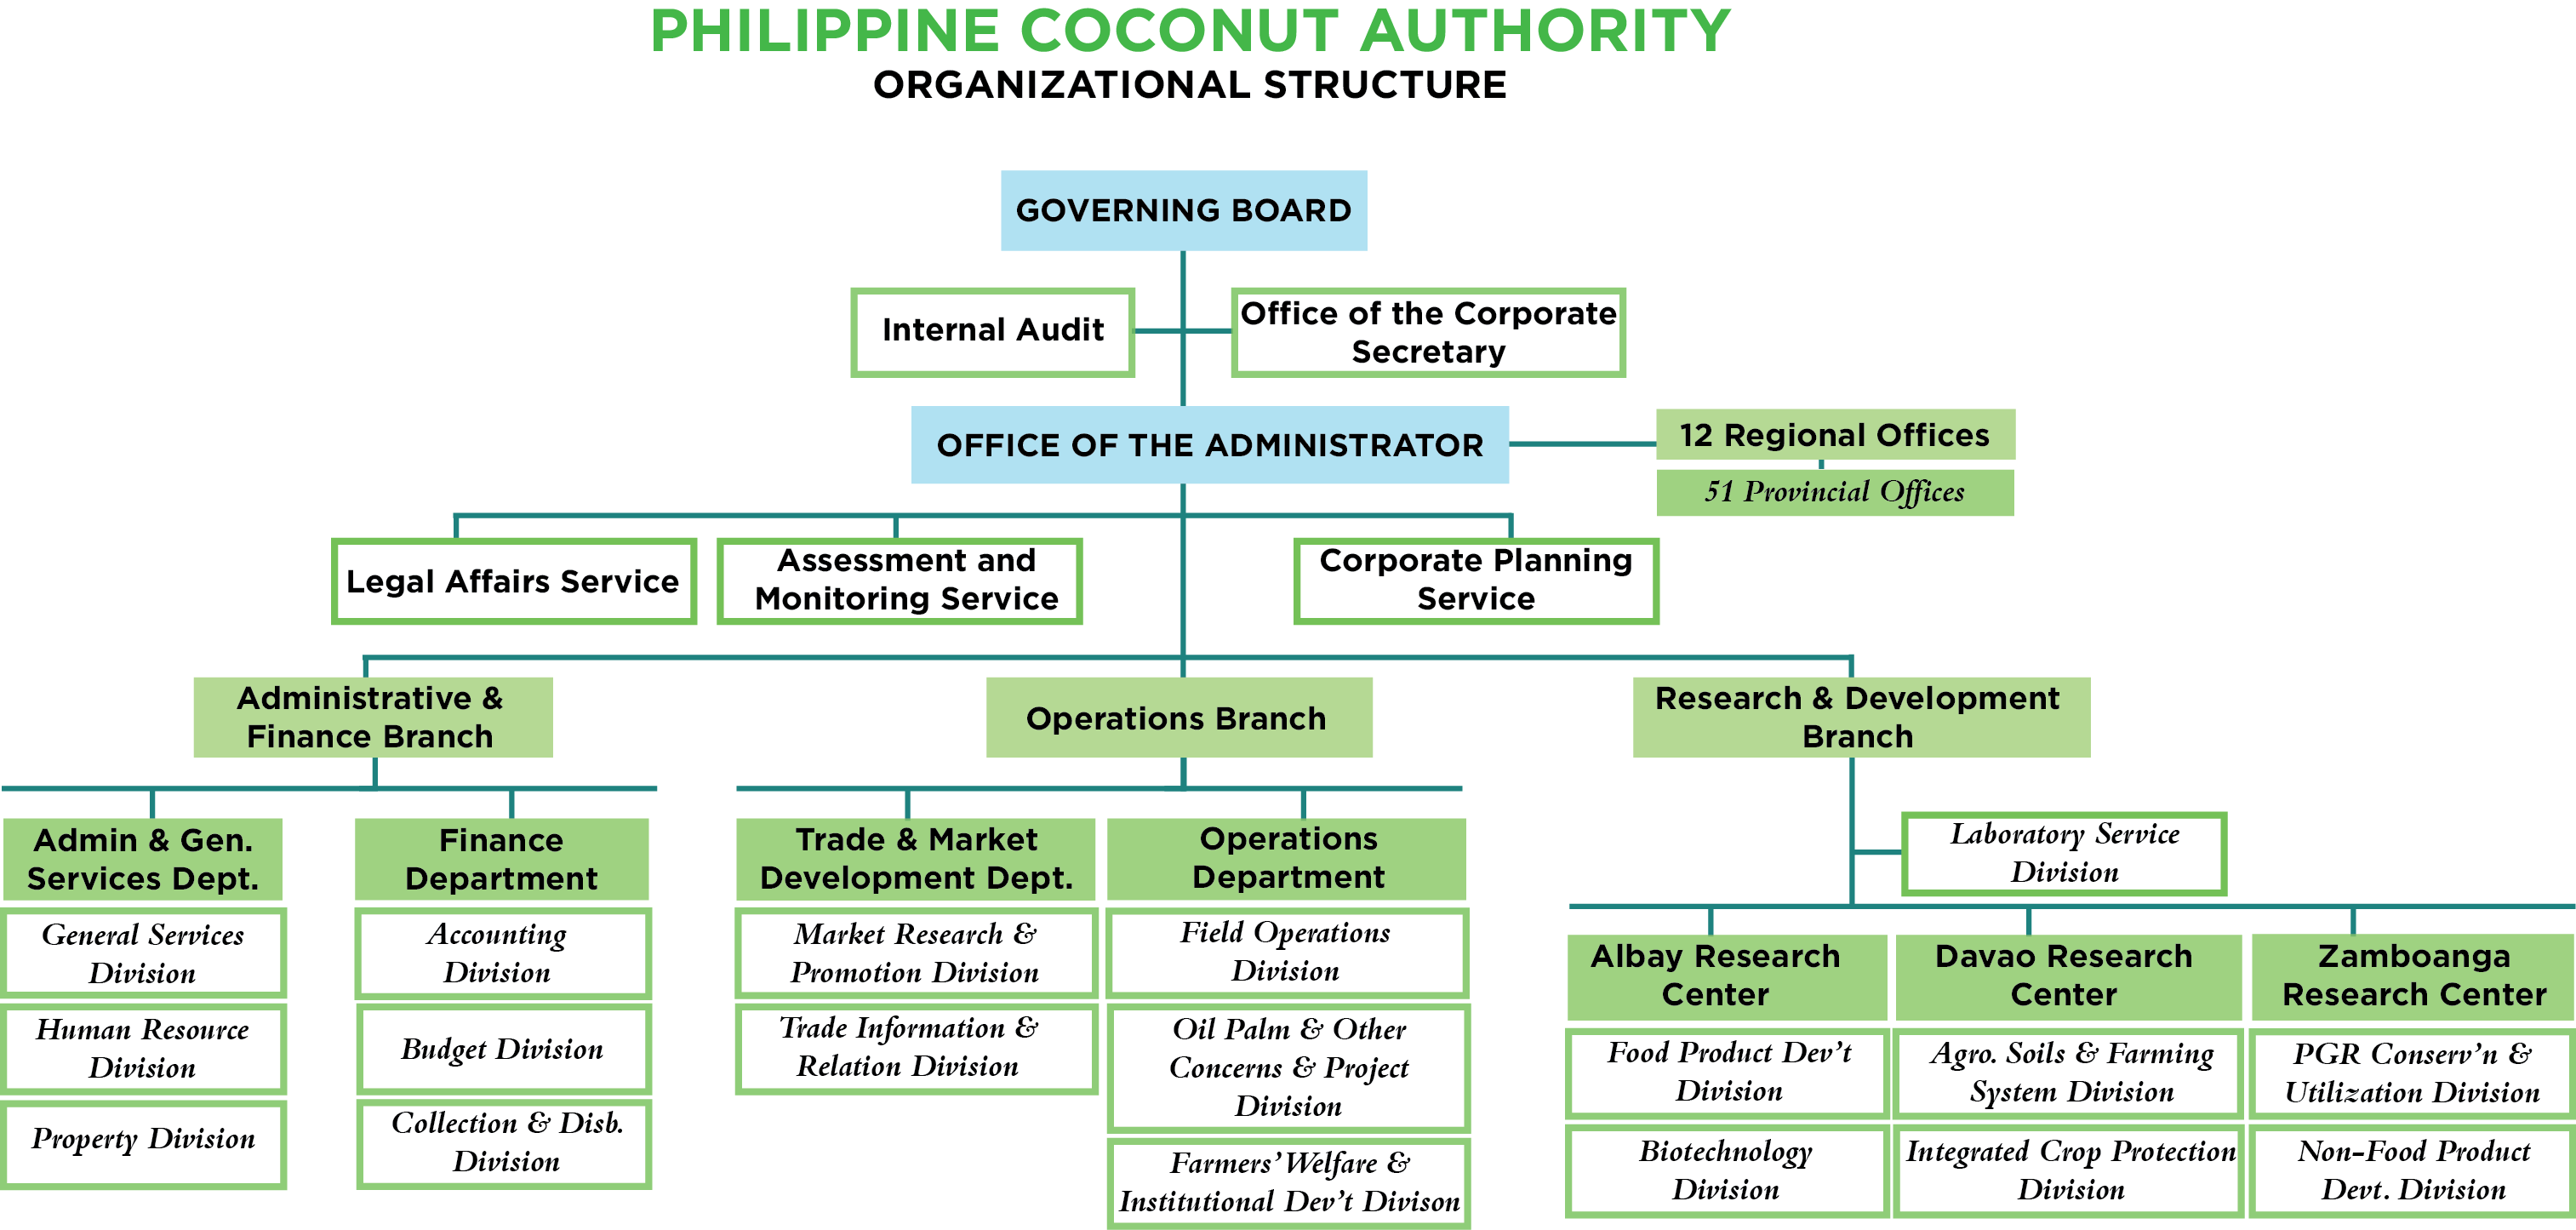 Organization clipart organizational hierarchy. Structure human resource complement